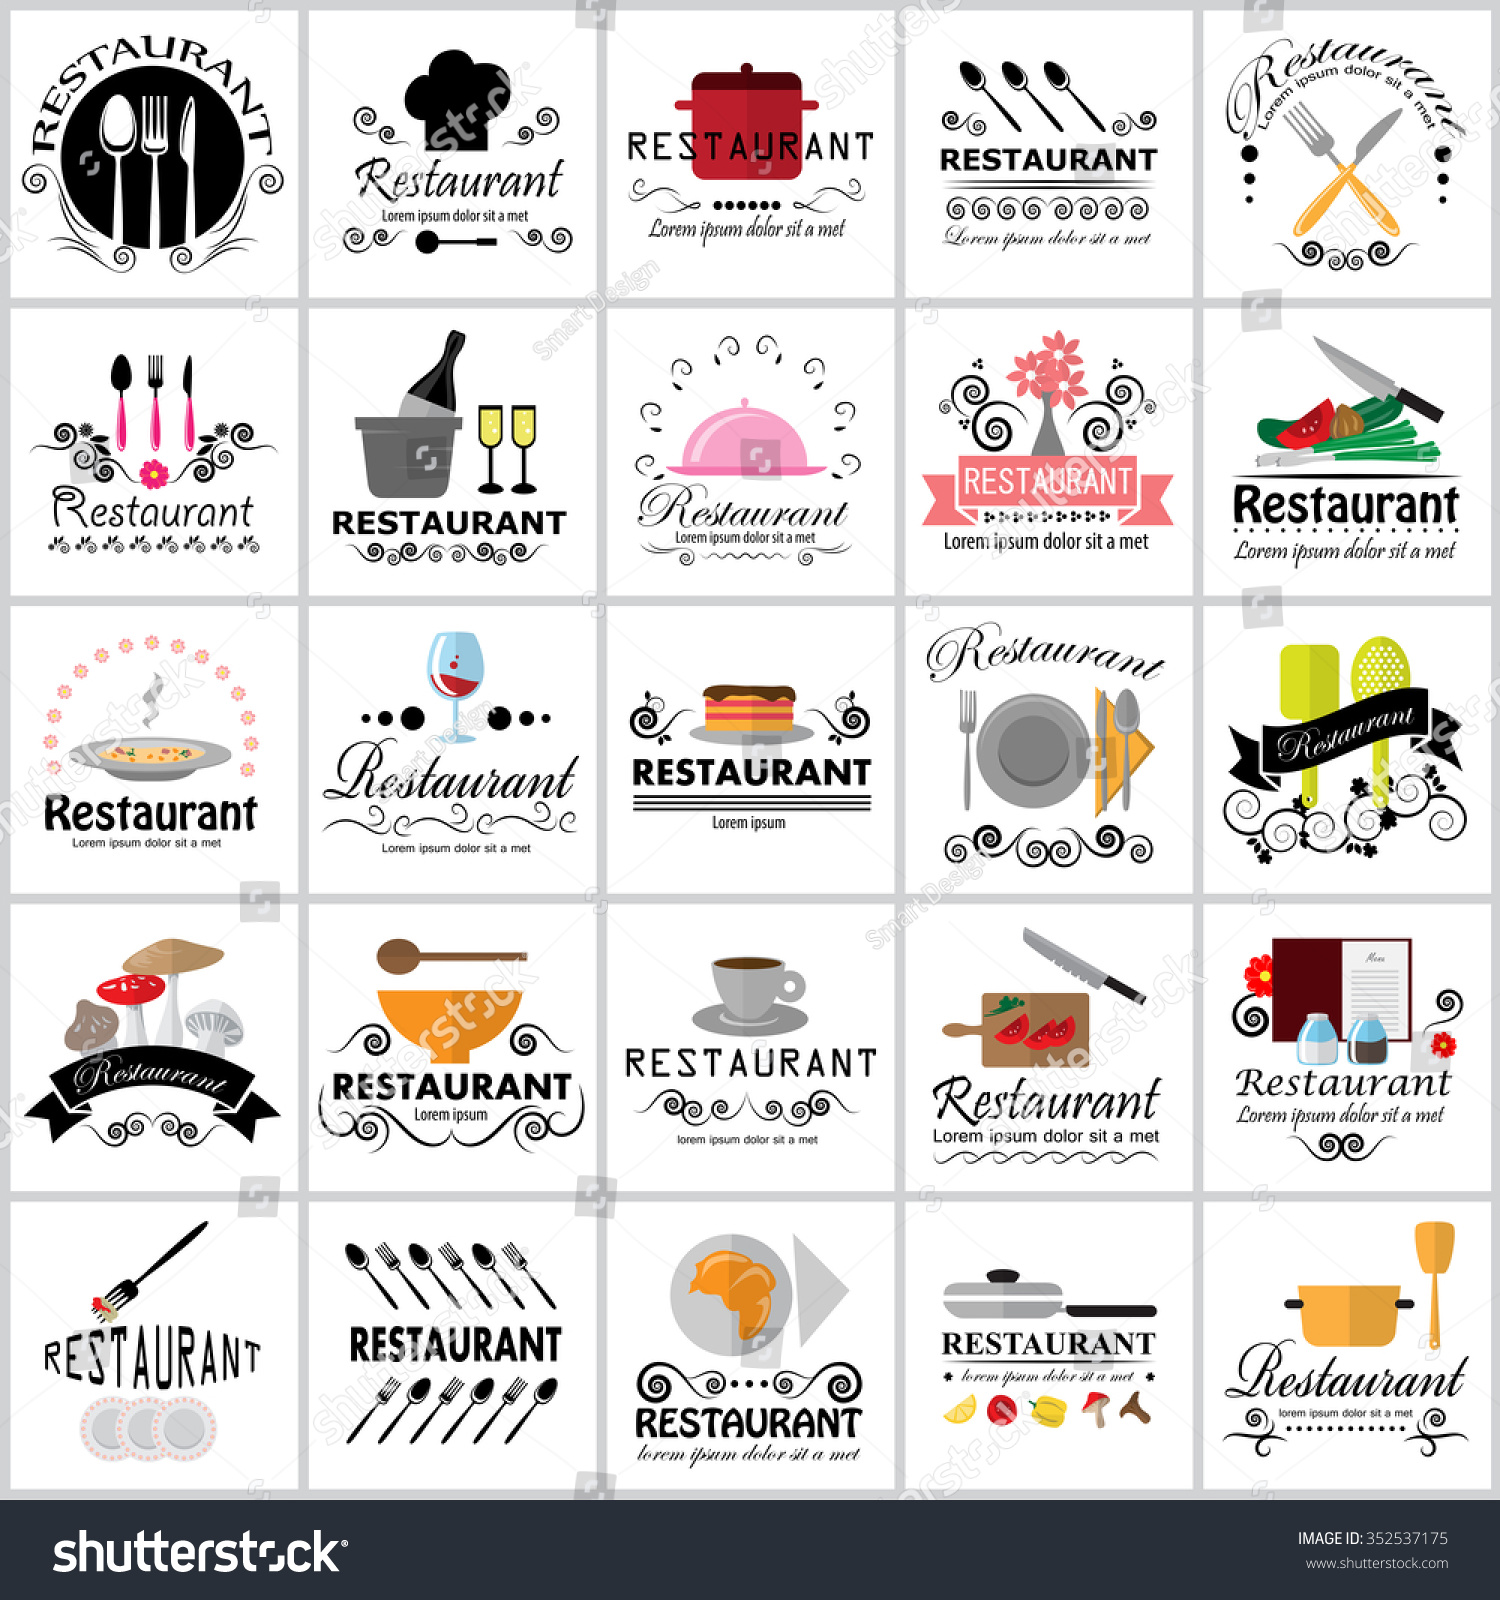 universal laser printer labels template - restaurant icons set vector illustration graphic stock